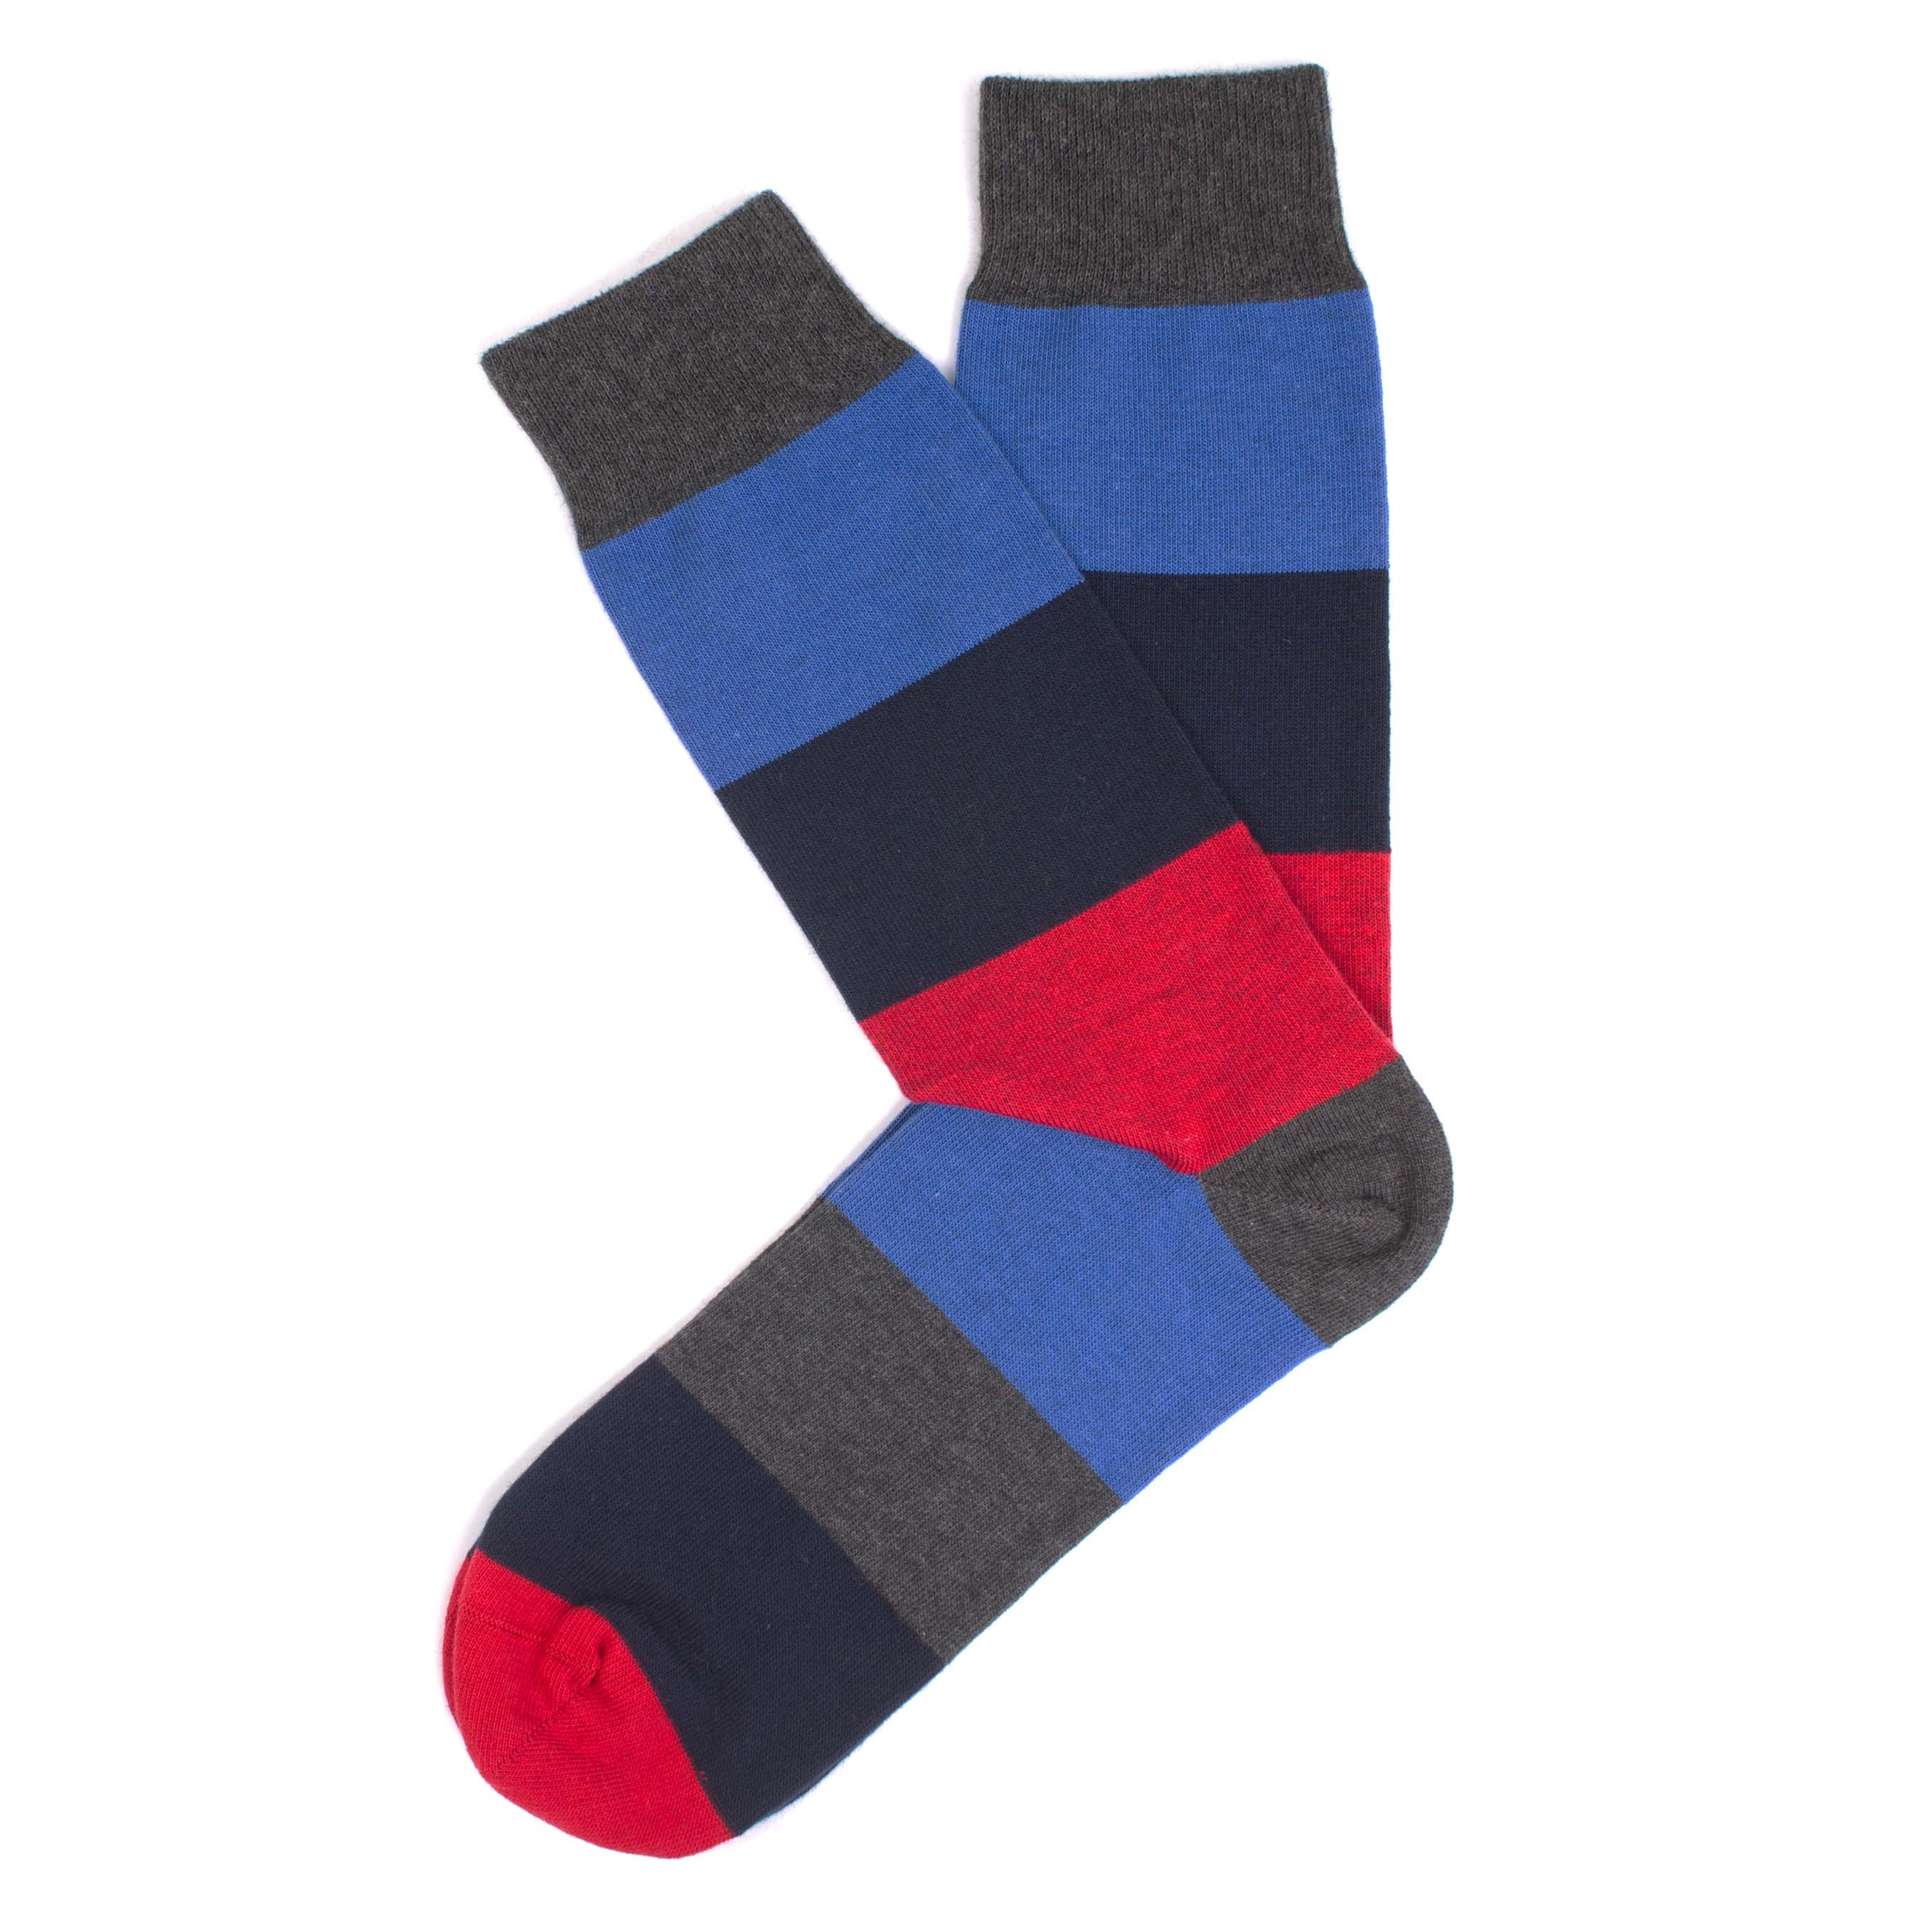 Navy and grey melange socks, red/navy big stripe